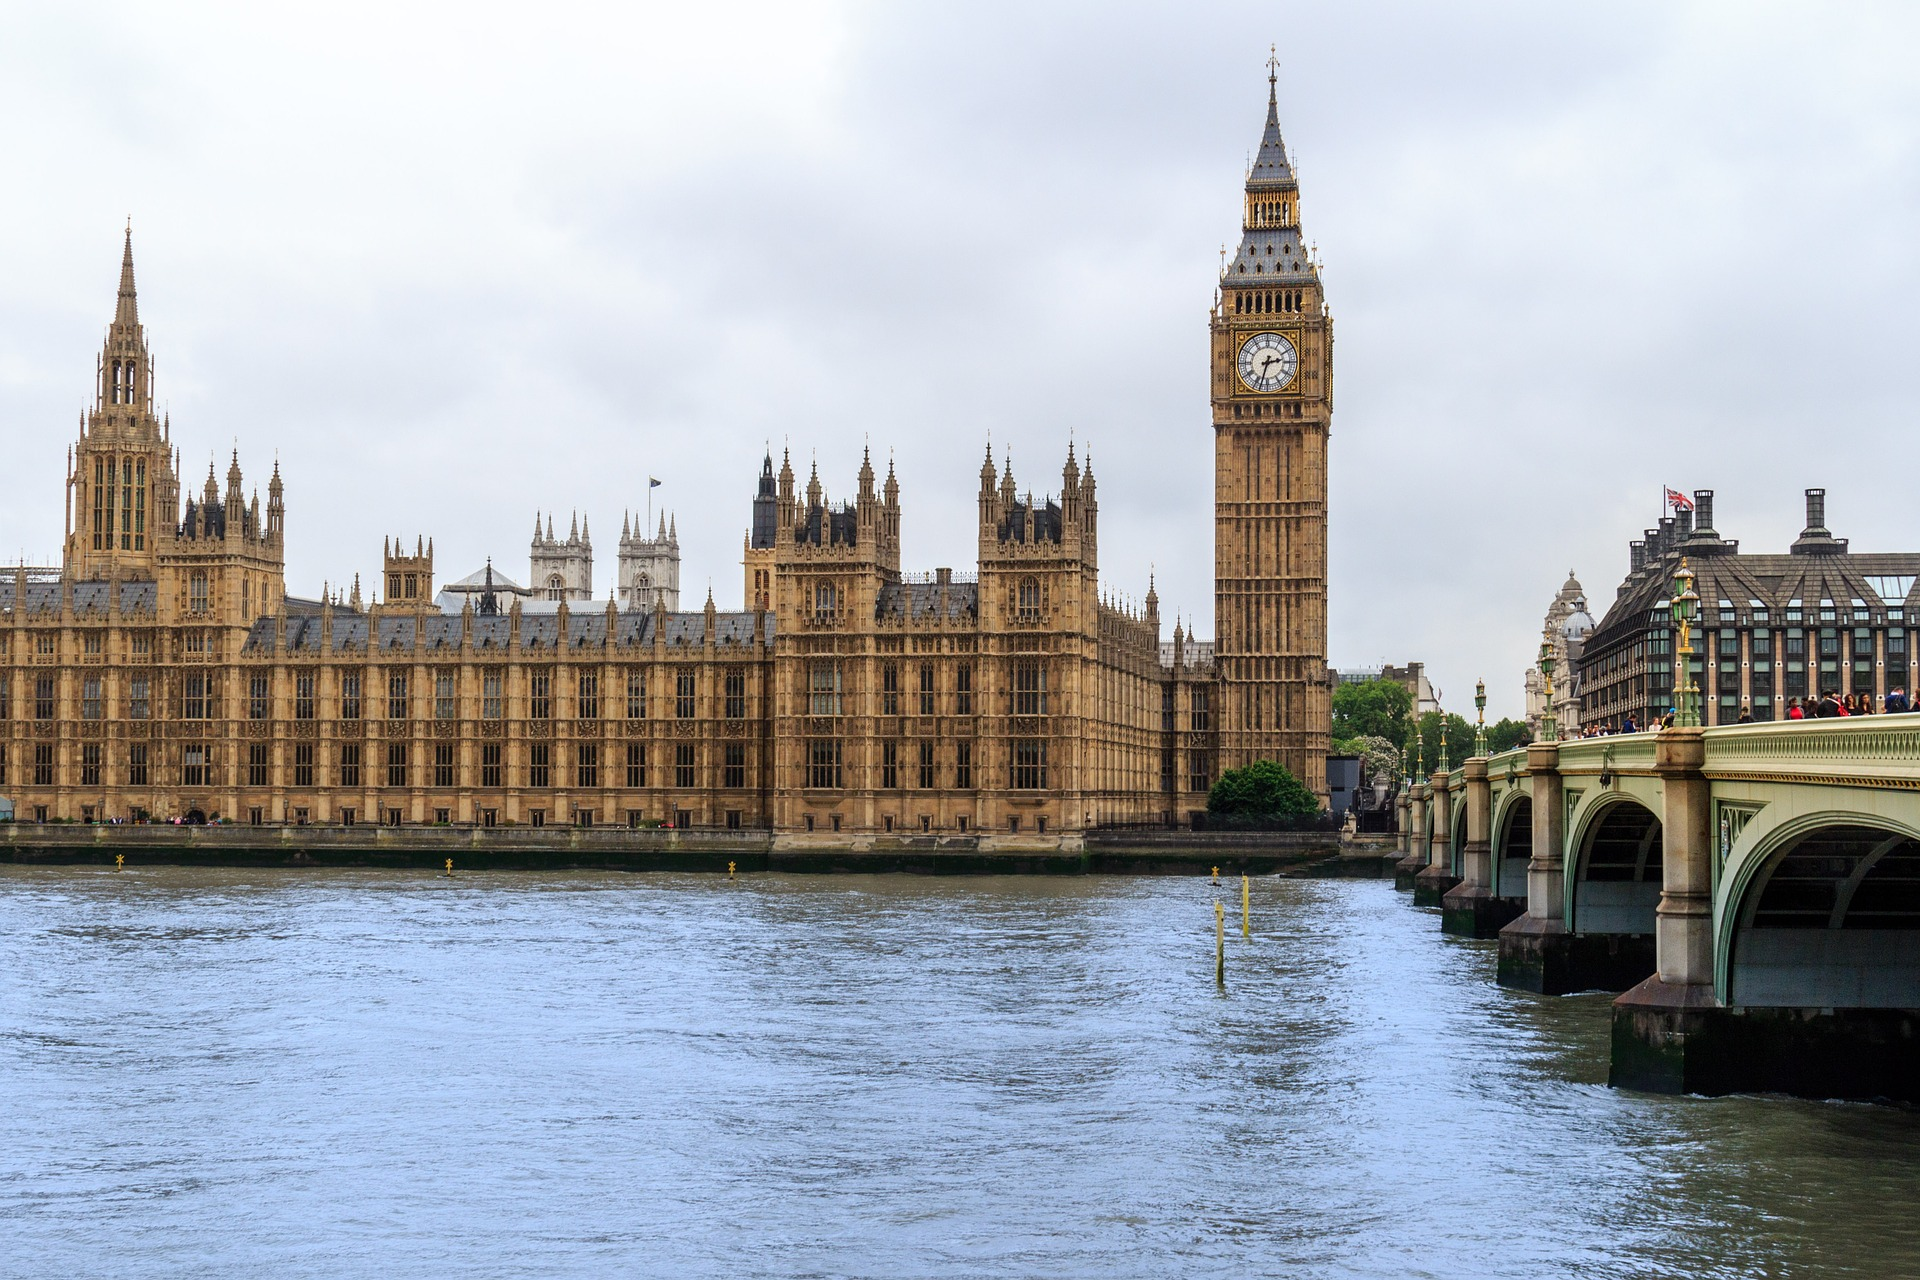 Big Ben, at the Palace of Westminster, London